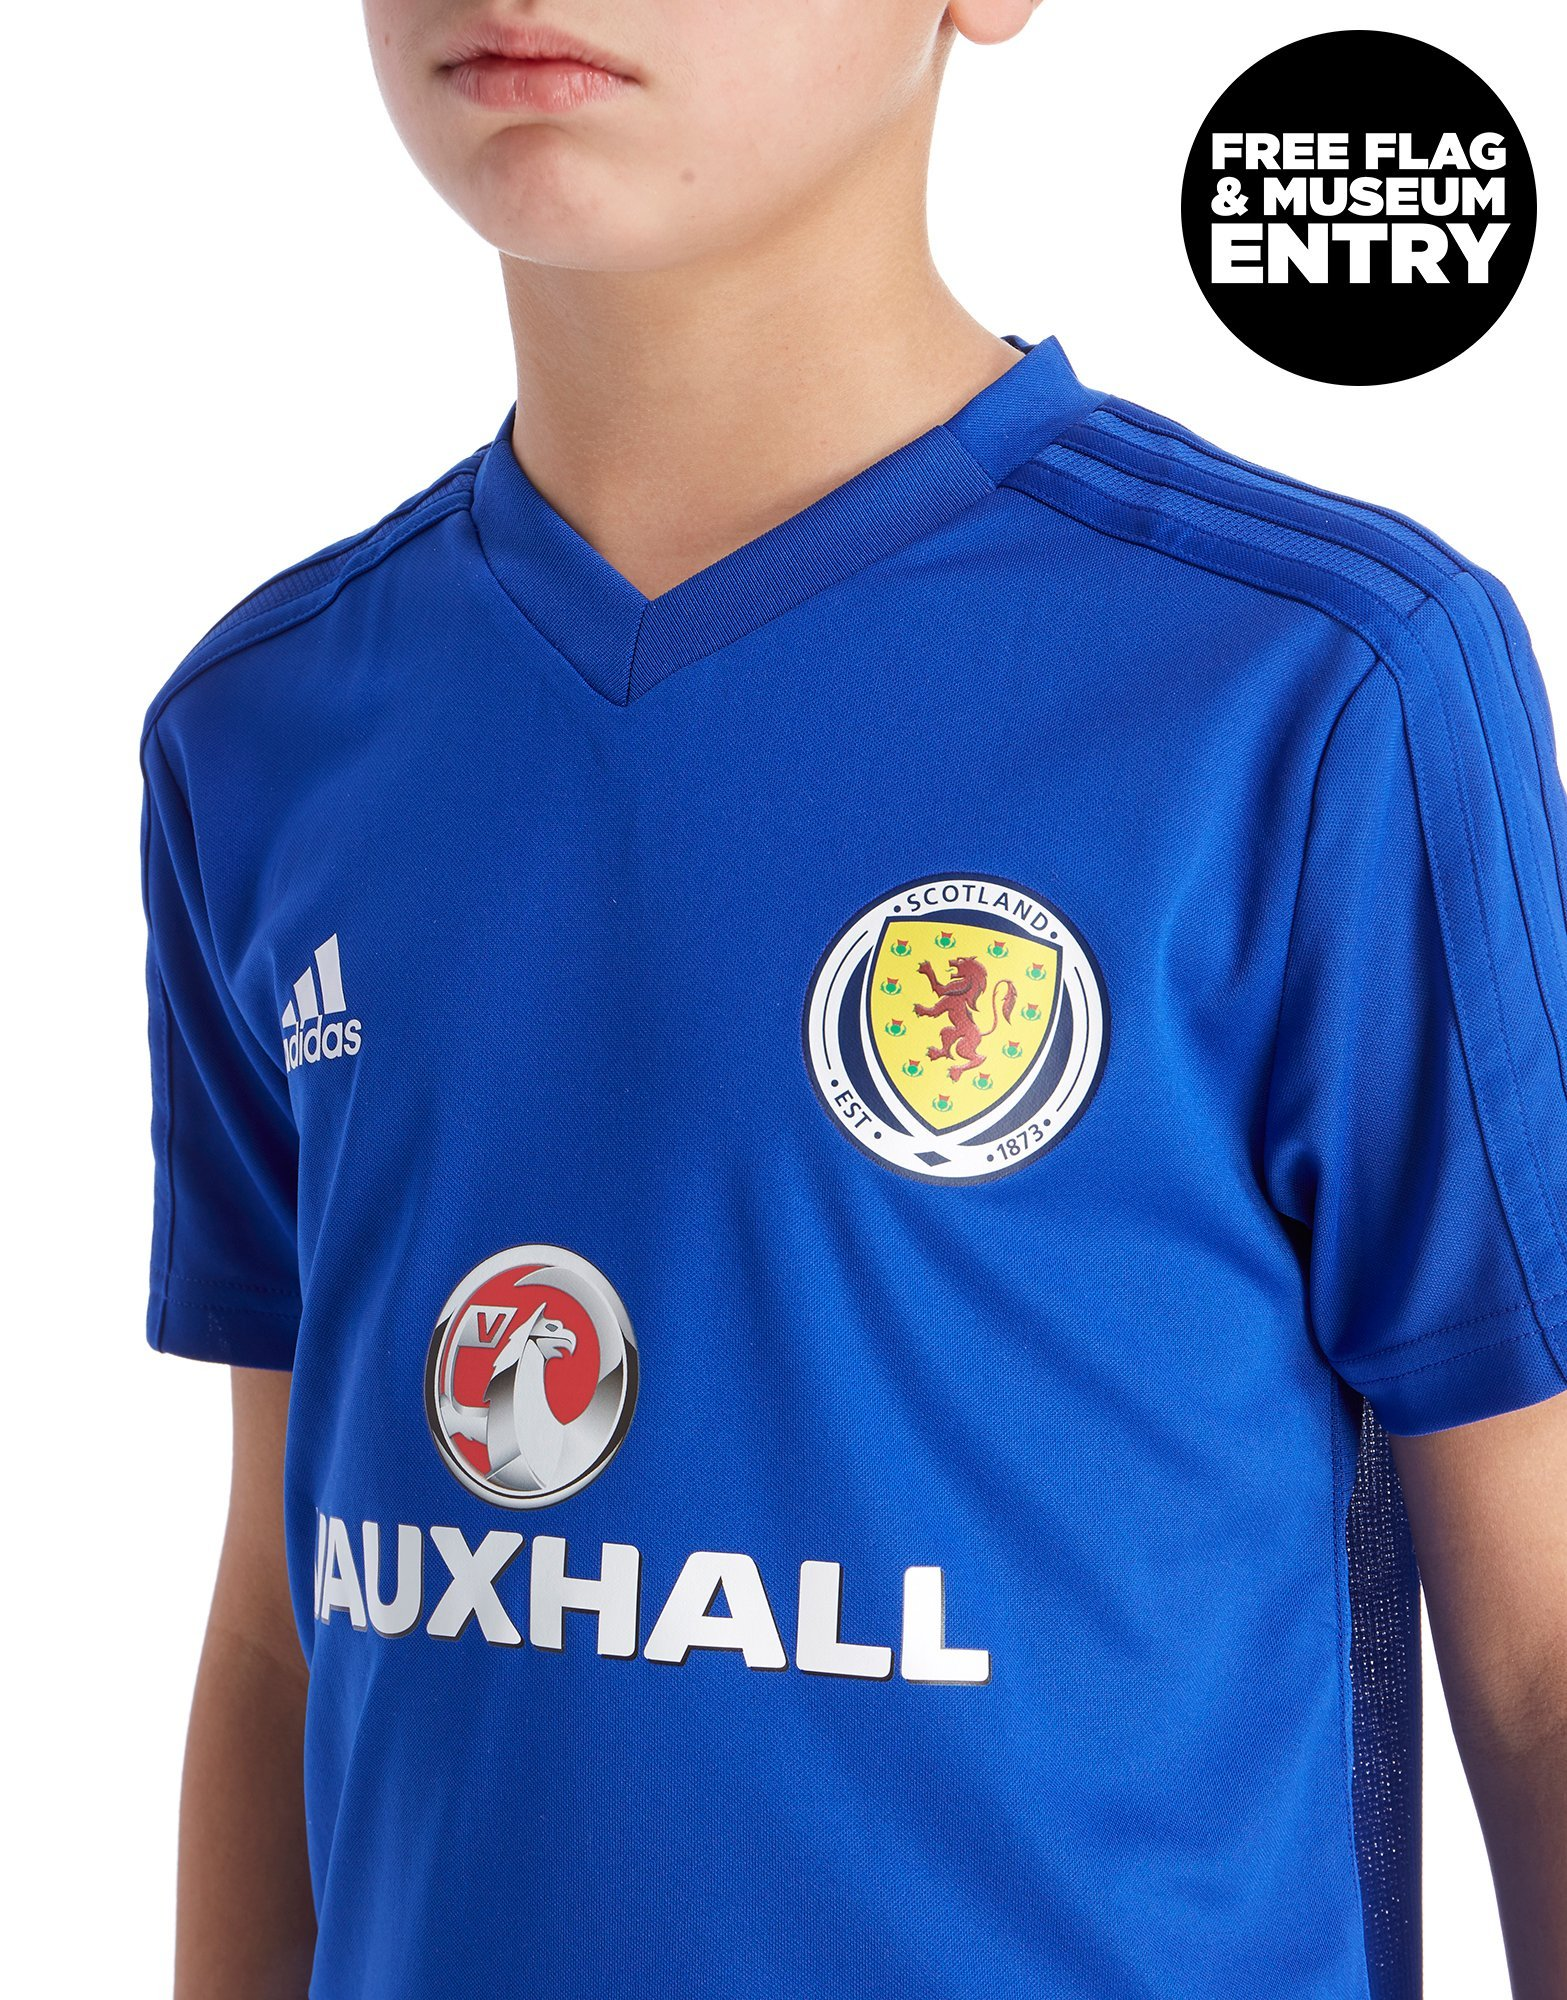 adidas Scotland FA 2018/19 Training Shirt Junior